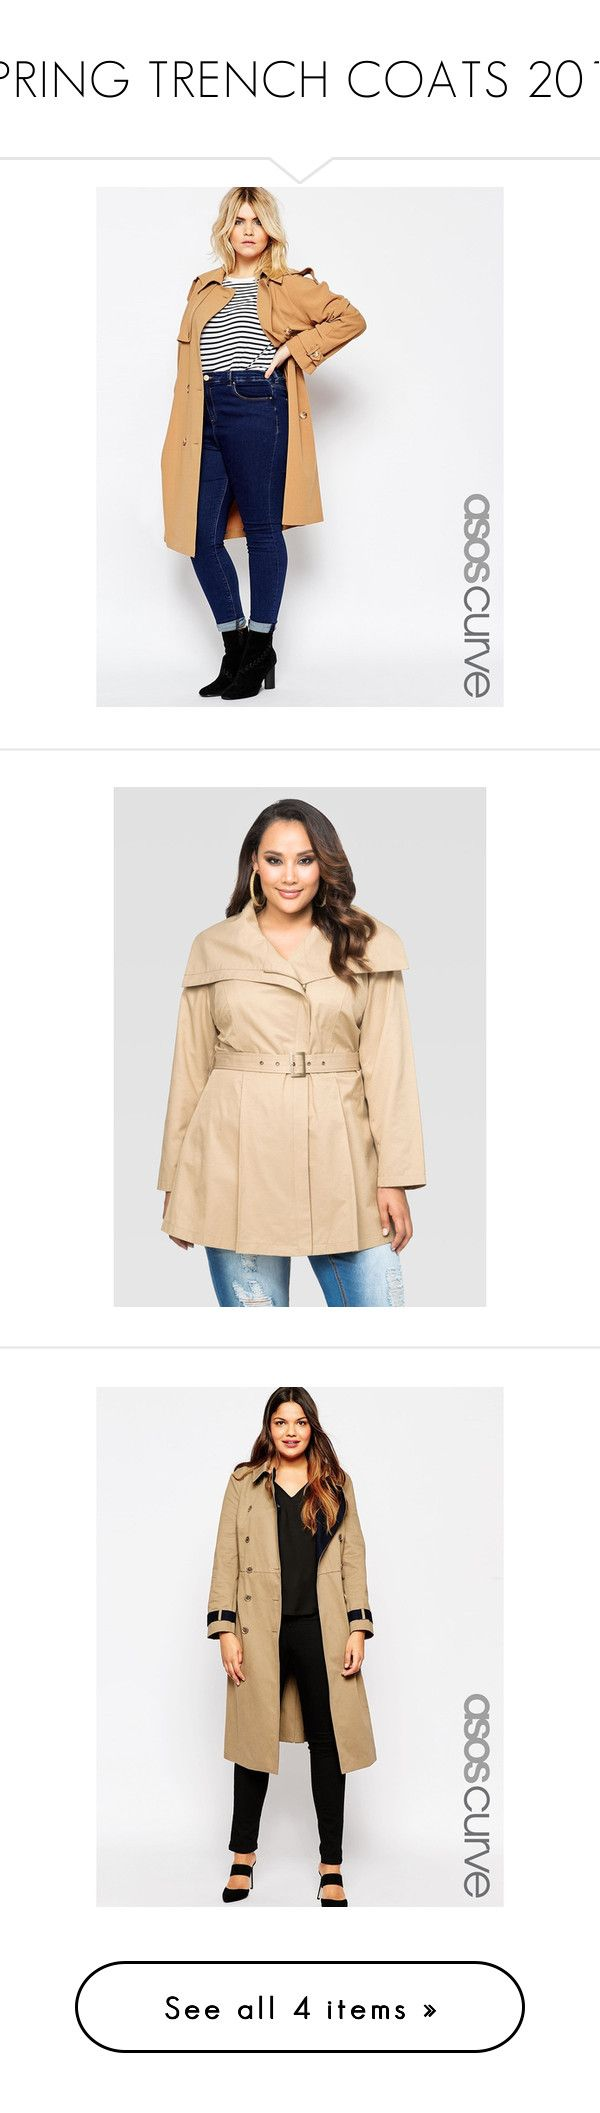 SPRING TRENCH COATS 2016 by audreannabellahawthorne on Polyvore featuring polyvore women's fashion clothing outerwear camel plus size trench coat asos curve coats plus size wrap coat belted trench coat wrap trench coat ashley stewart coats fur-lined coats plus size women's fashion plus size clothing plus size outerwear plus size coats khaki white double breasted coat white trench coat cotton trench coat khaki coat beige beige trenchcoat womens plus coats women plus size coats lane bryant…